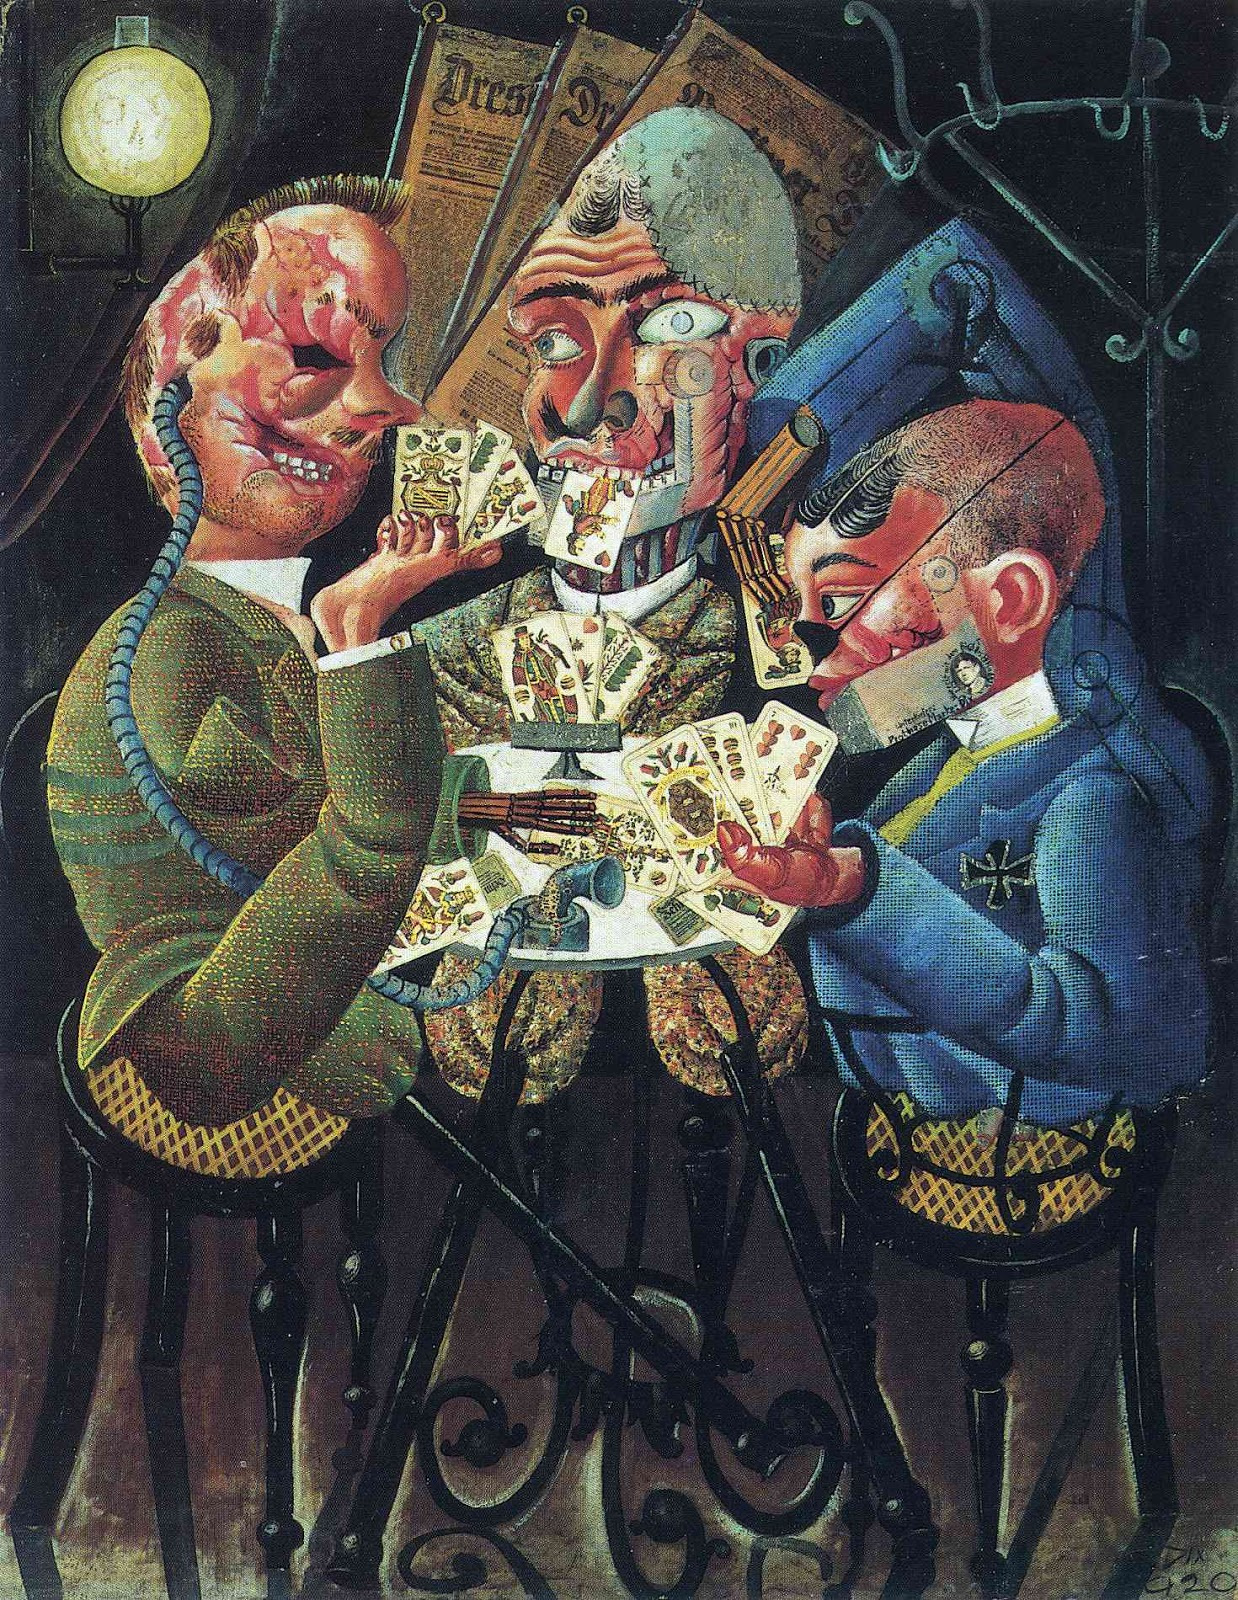 Otto Dix, The Skat Players, 1920